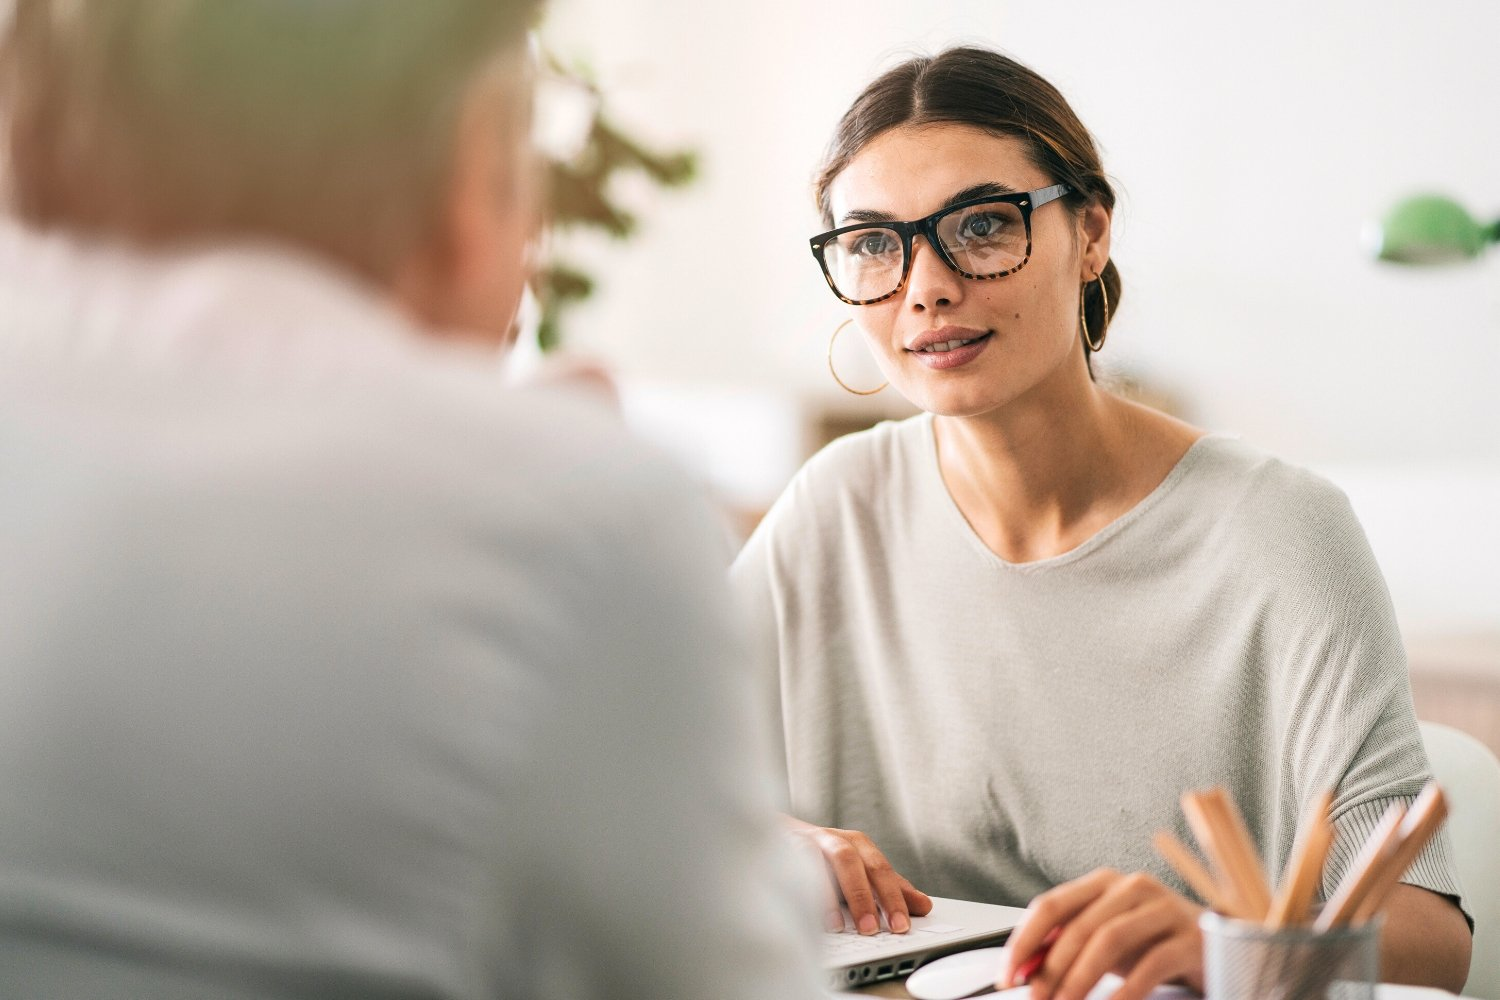 When to Ask About Salary and Benefits in an Interview